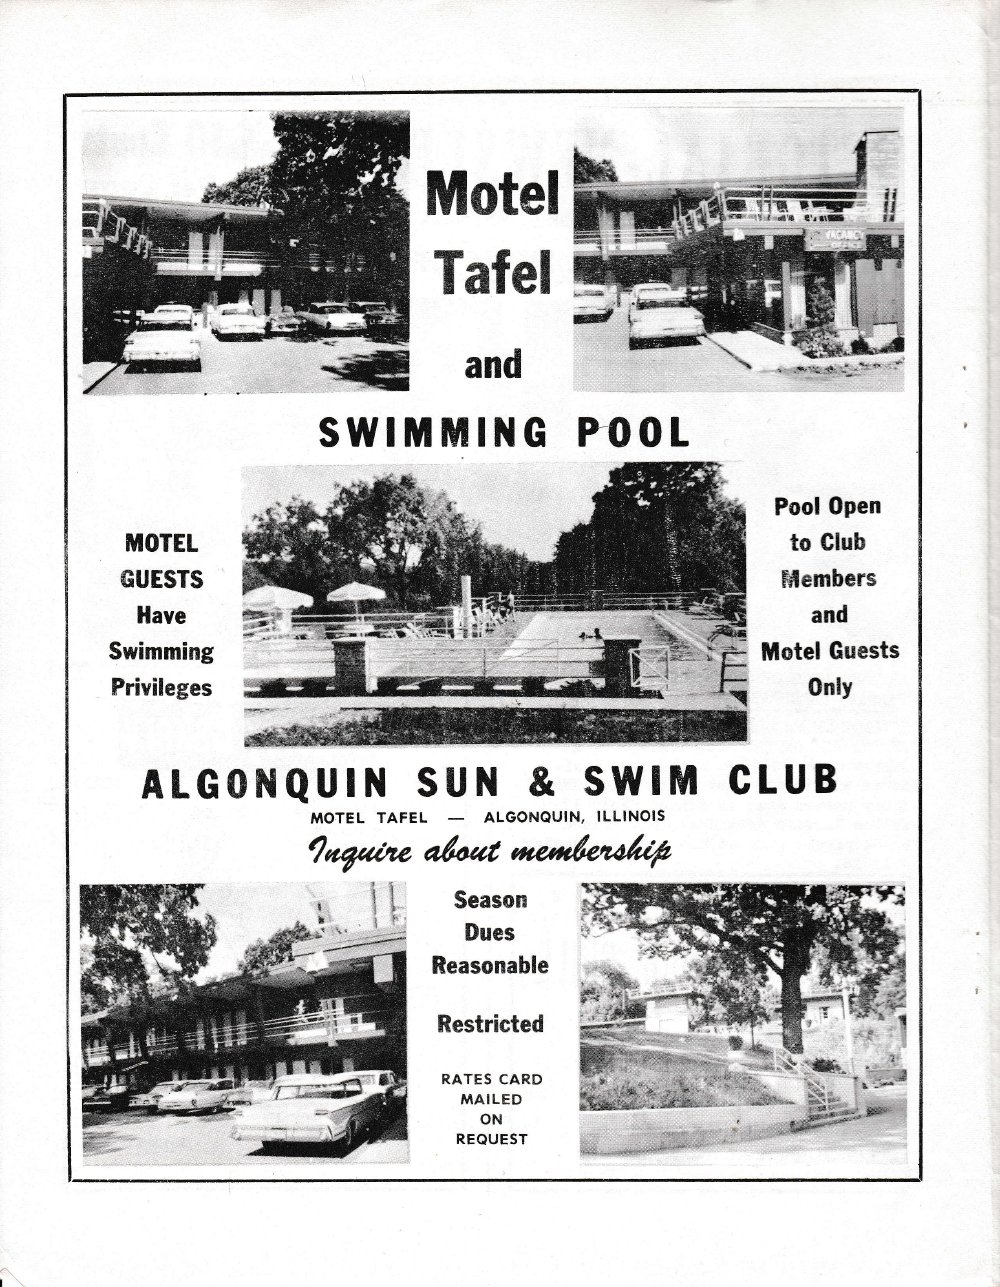 The Pictorial Newsletter: August 2, 1961